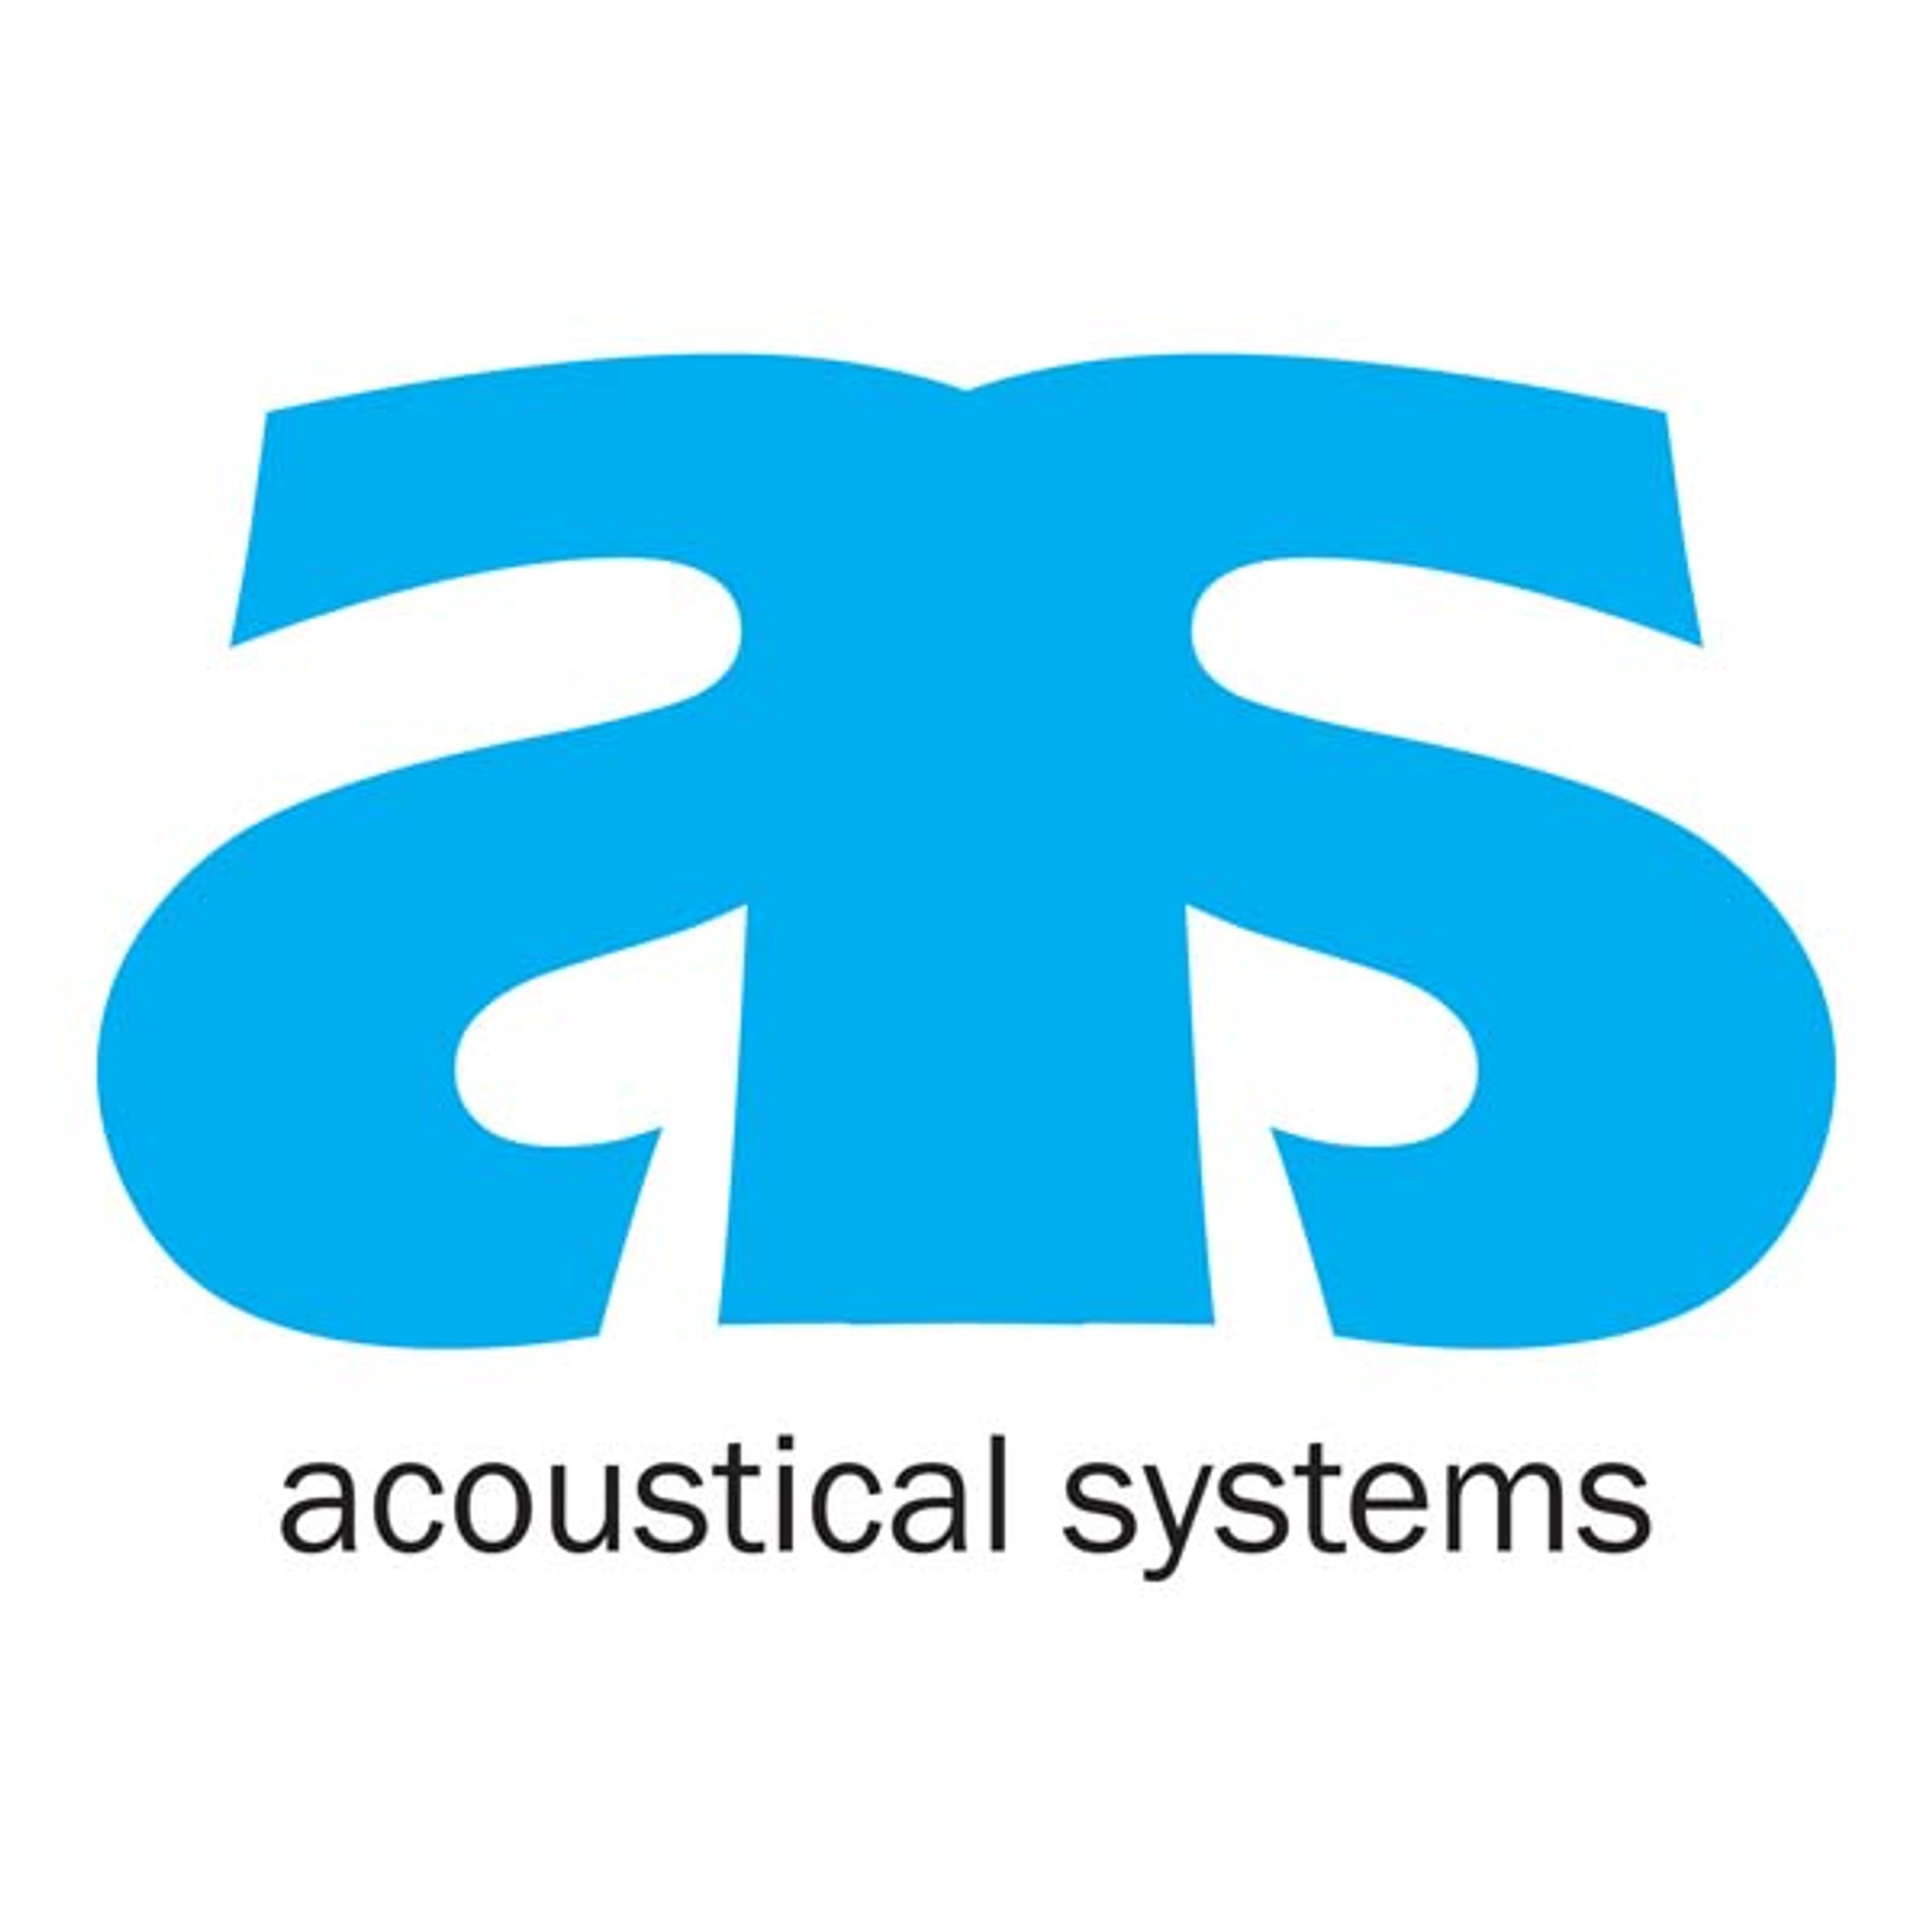 Acoustical Systems from Germany. Precision Turntable Tools